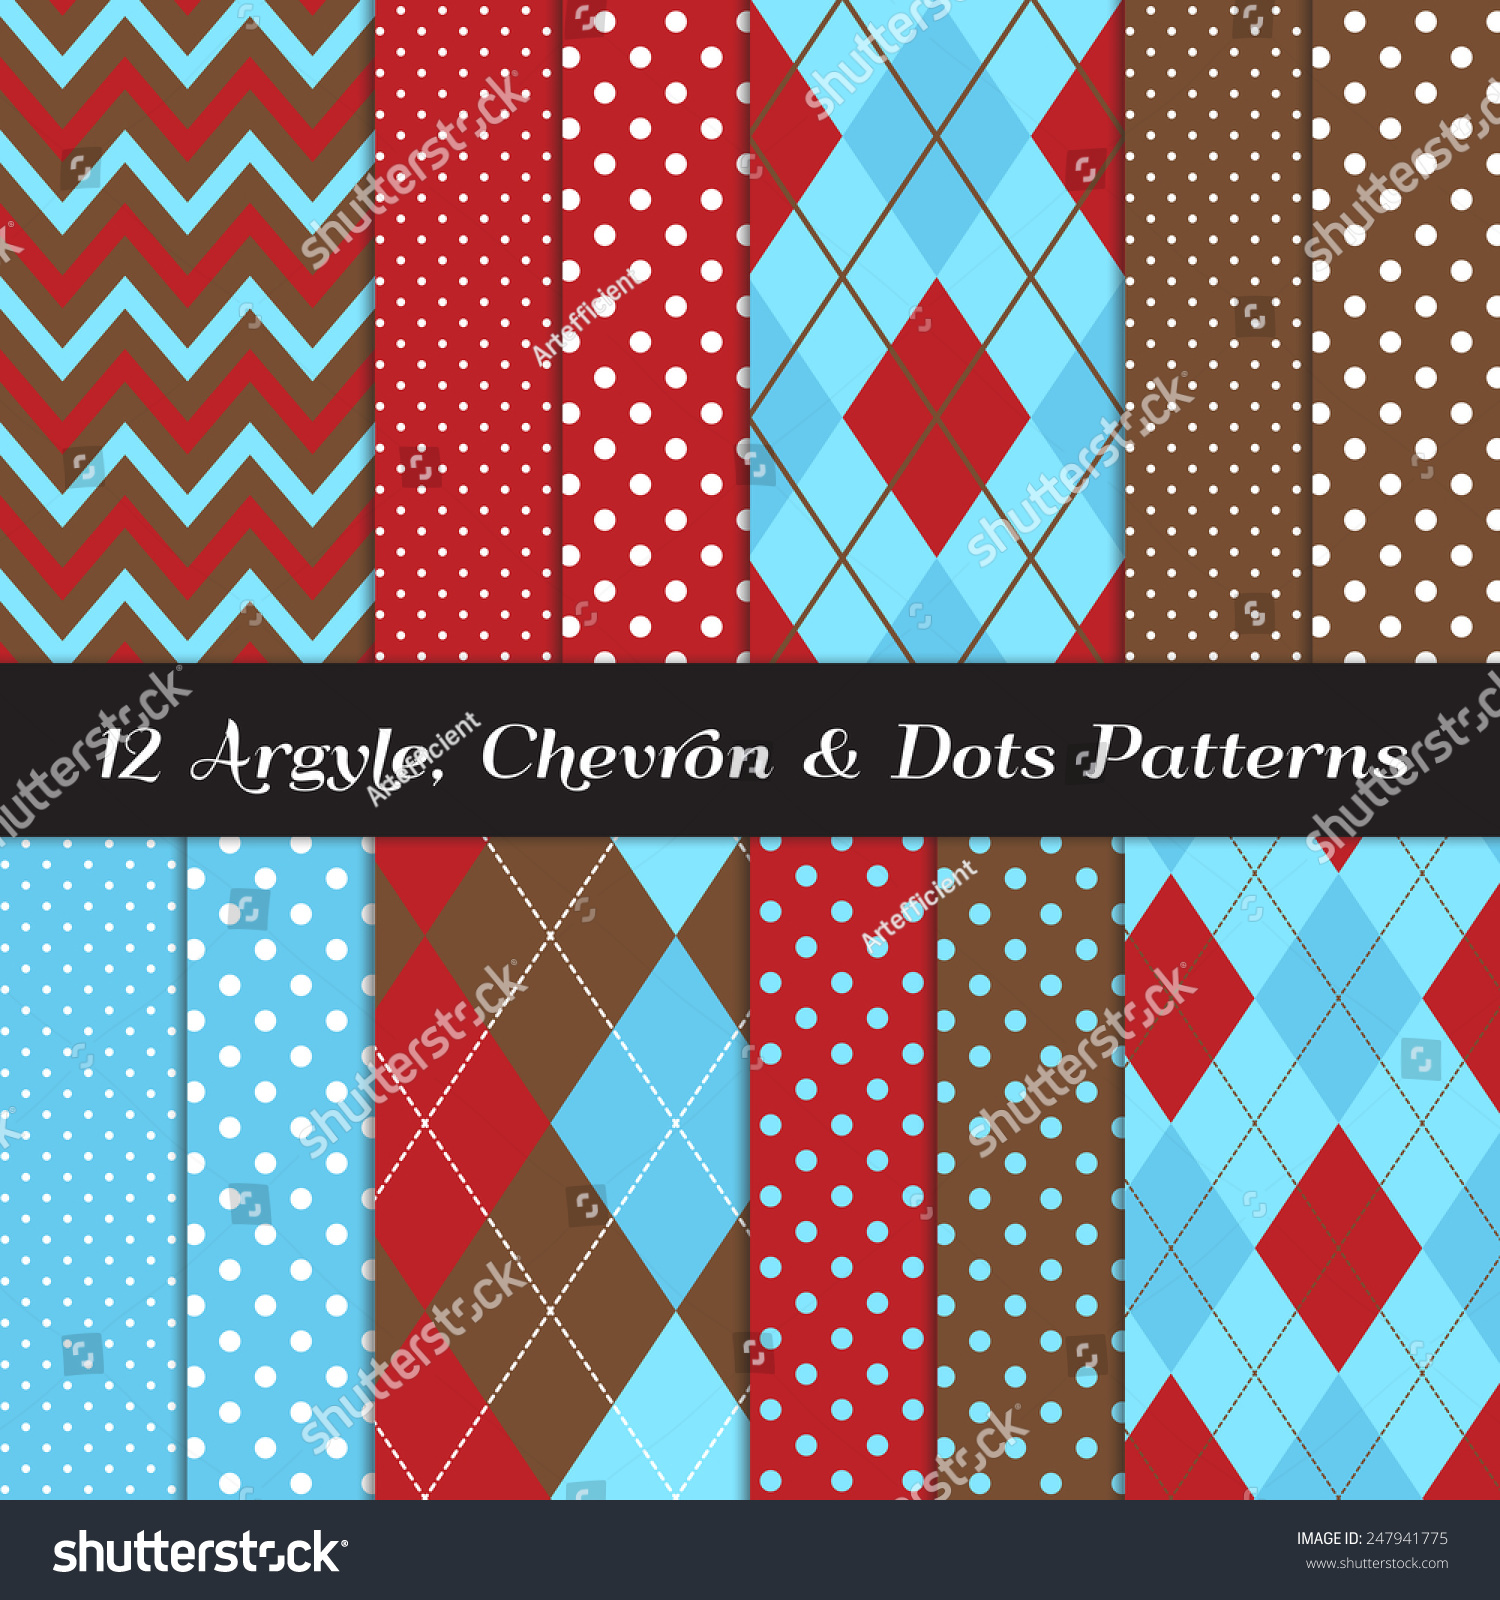 Pics photos merry christmas argyle twitter backgrounds - Two Tone Blue Red Brown And White Chevron Argyle And Polka Dot Patterns